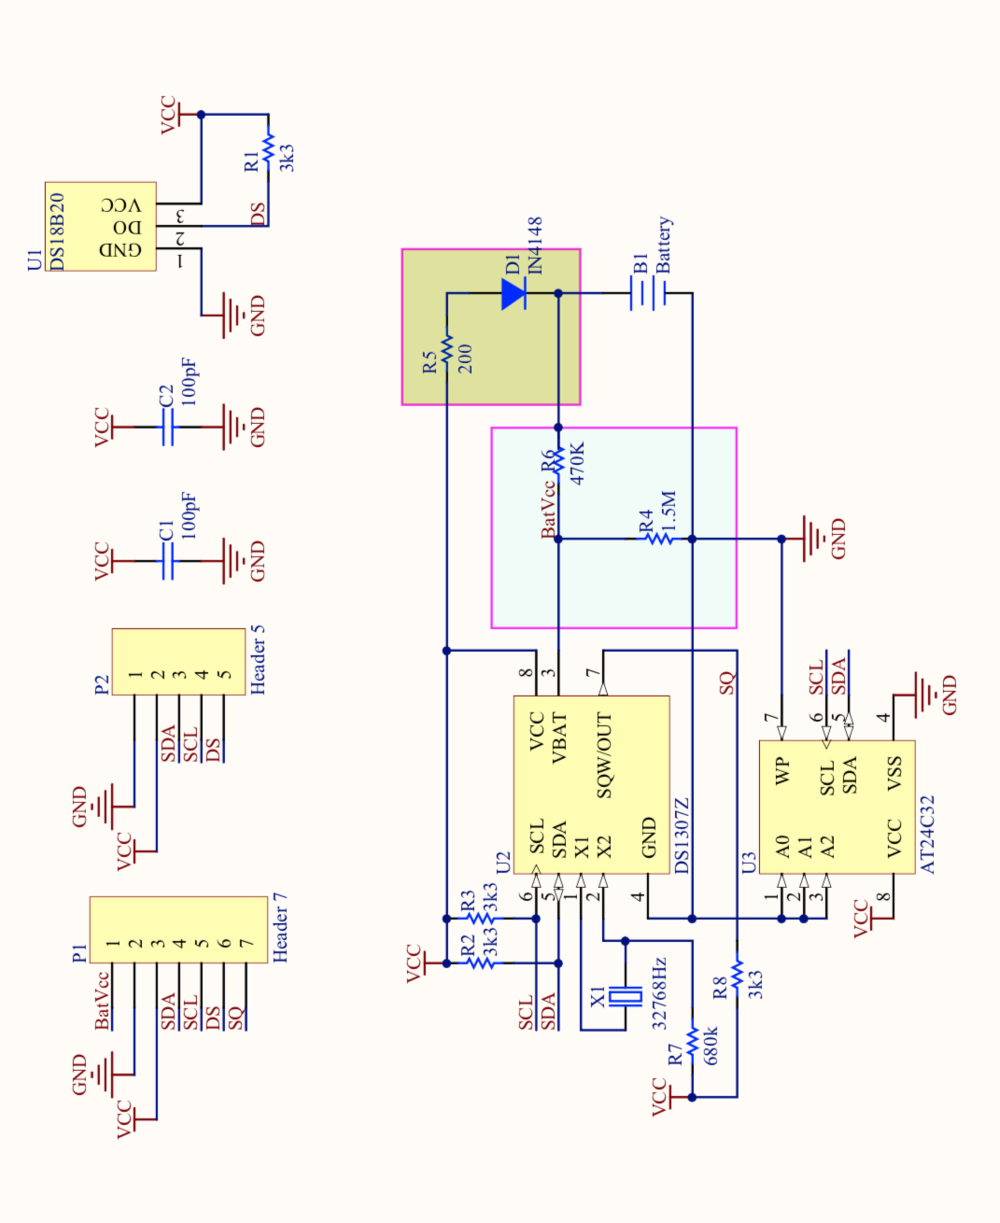 DS1307_Schematic.png